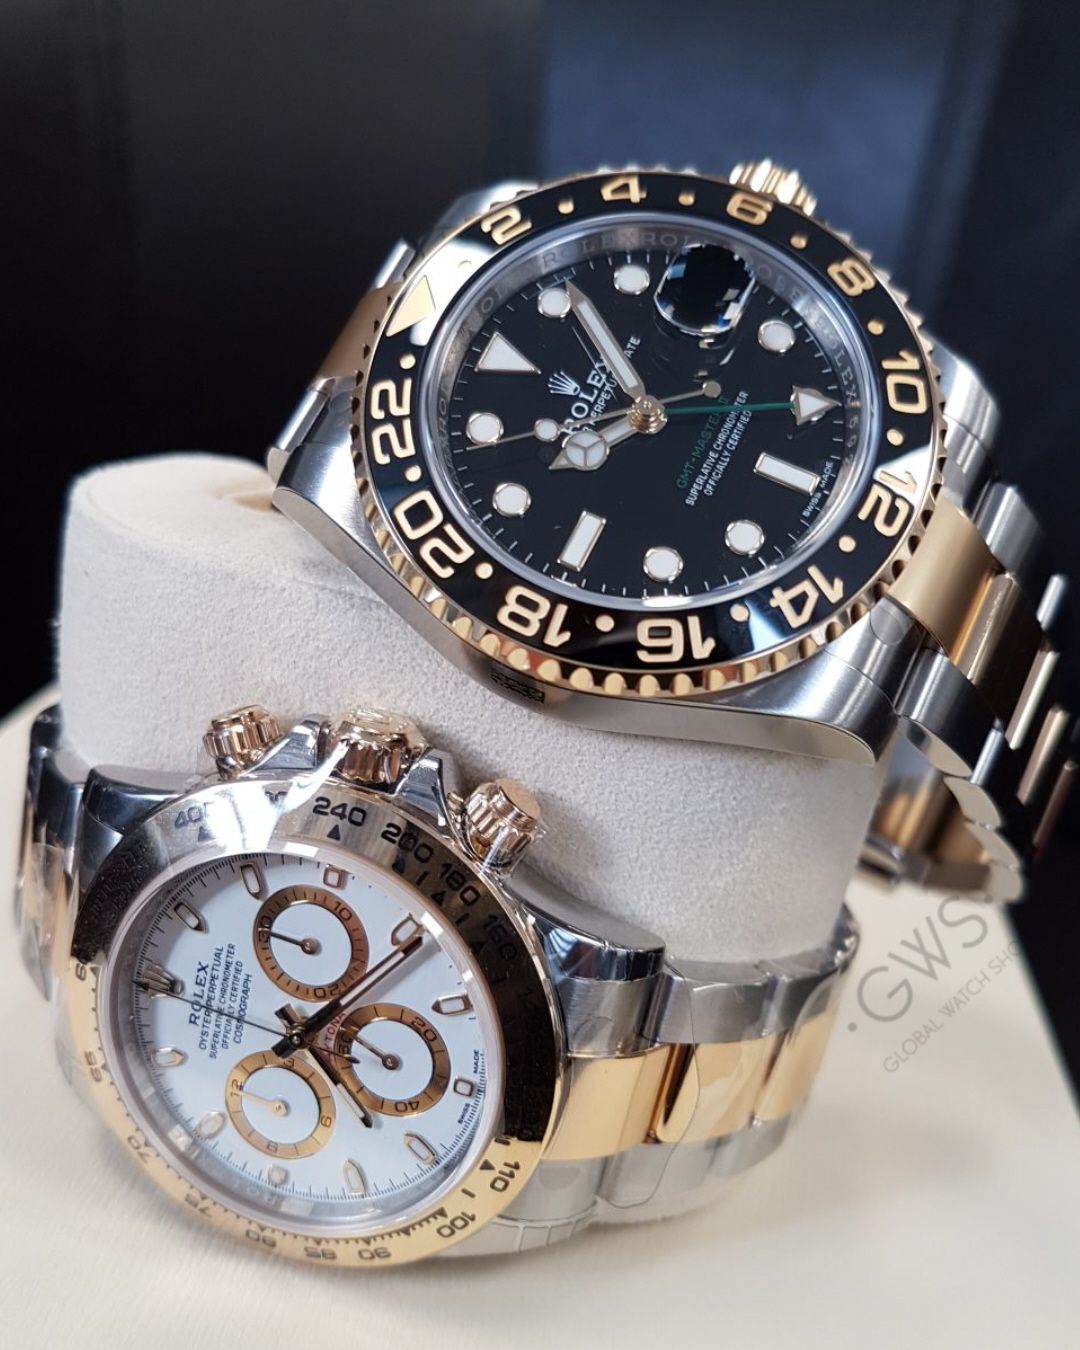 d7707237379 Global Watch Shop - Buy New   Pre-Owned Luxury Watches